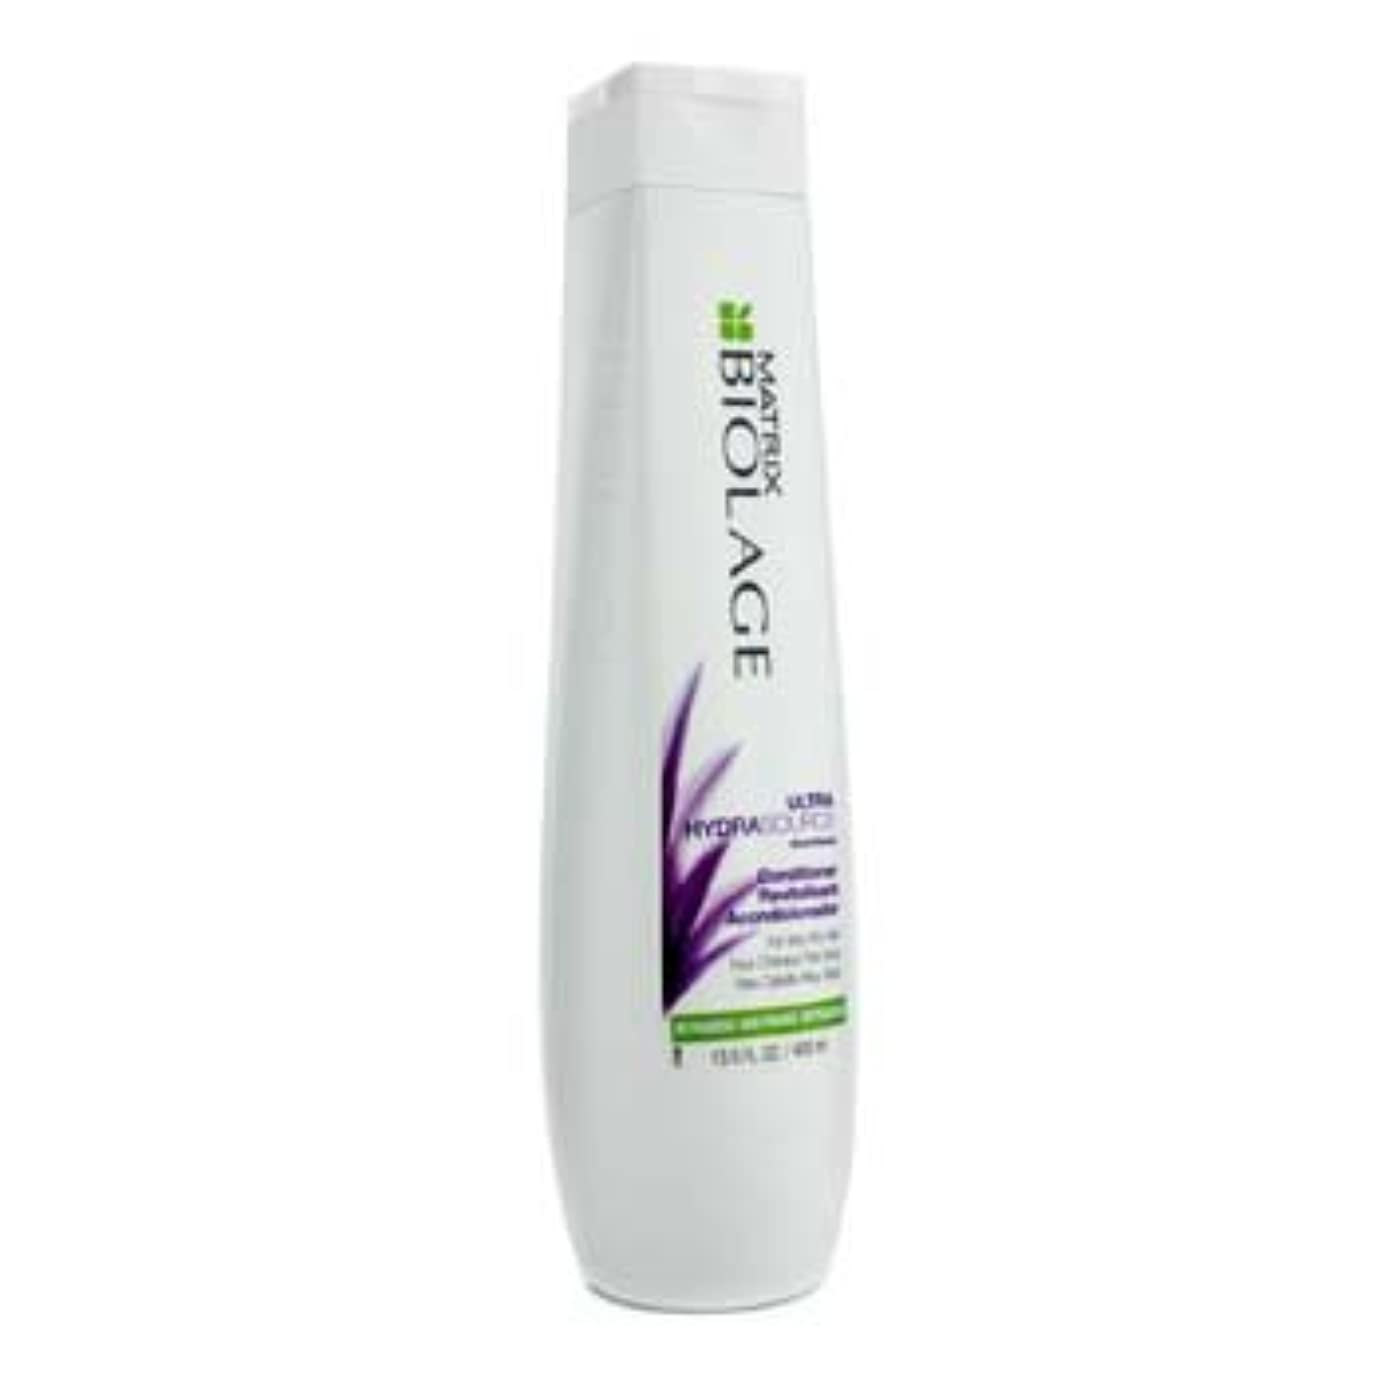 極めて重要な写真を描く選挙[Matrix] Biolage Ultra HydraSource Conditioner (For Very Dry Hair) 400ml/13.5oz